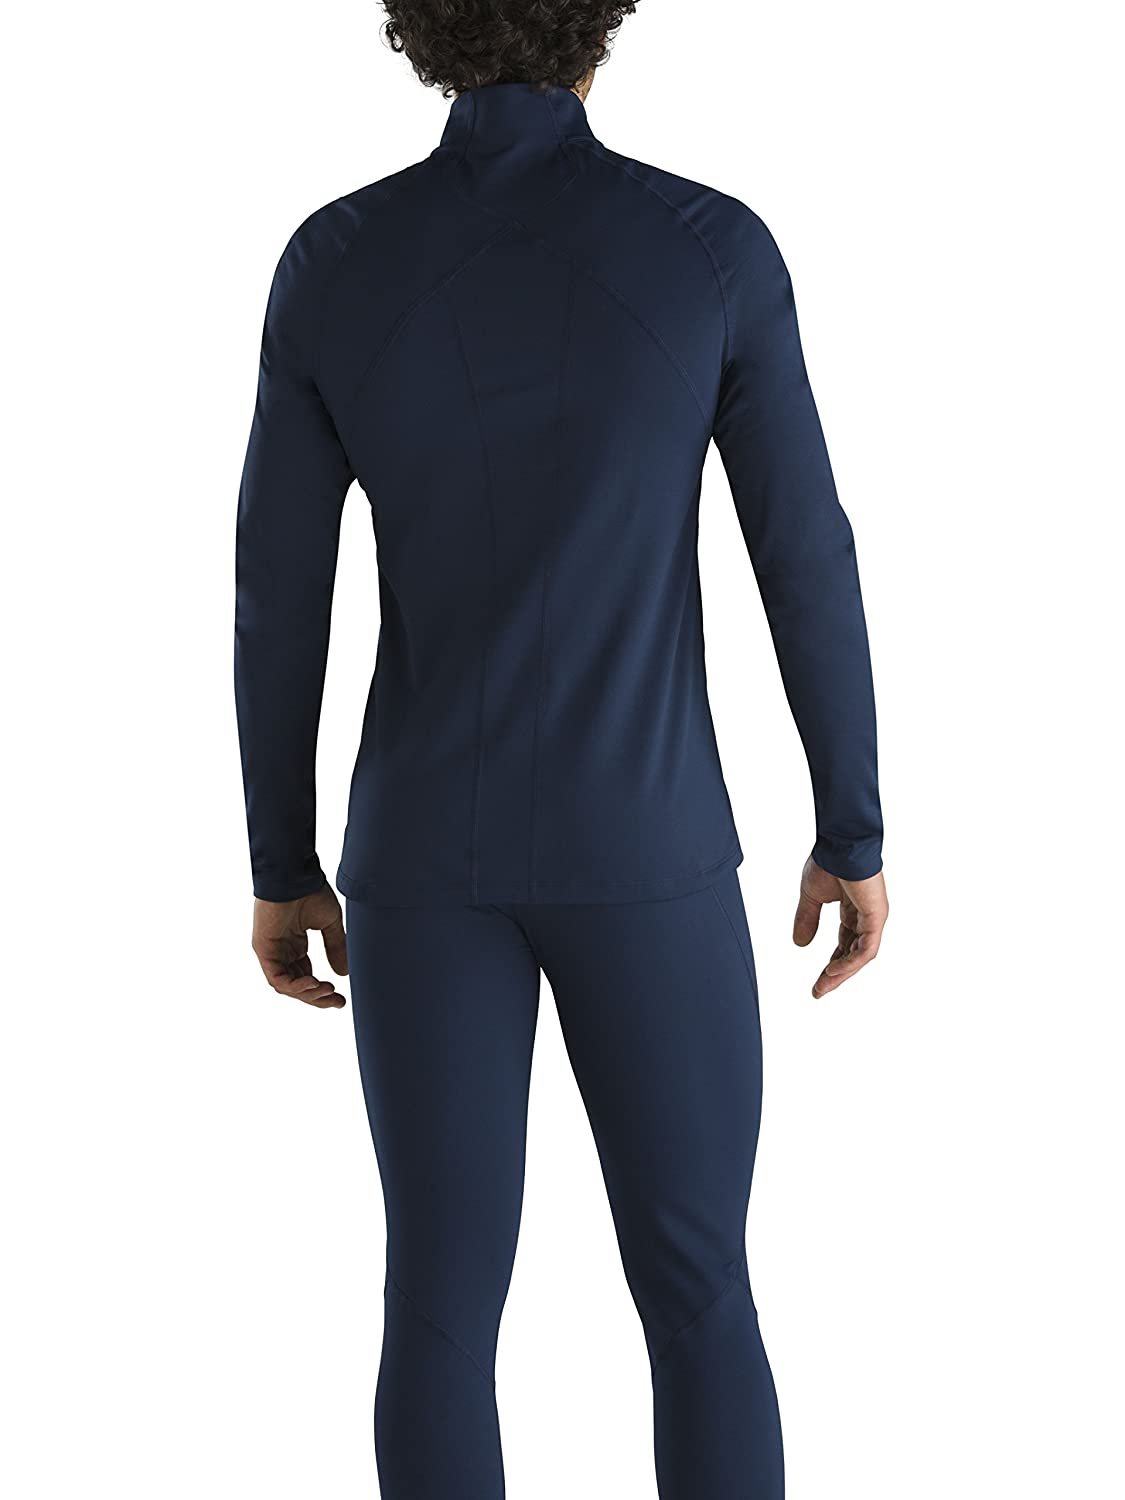 Saxx Underwear Mens Thermoflyte Performance Long Sleeve Top Black Small